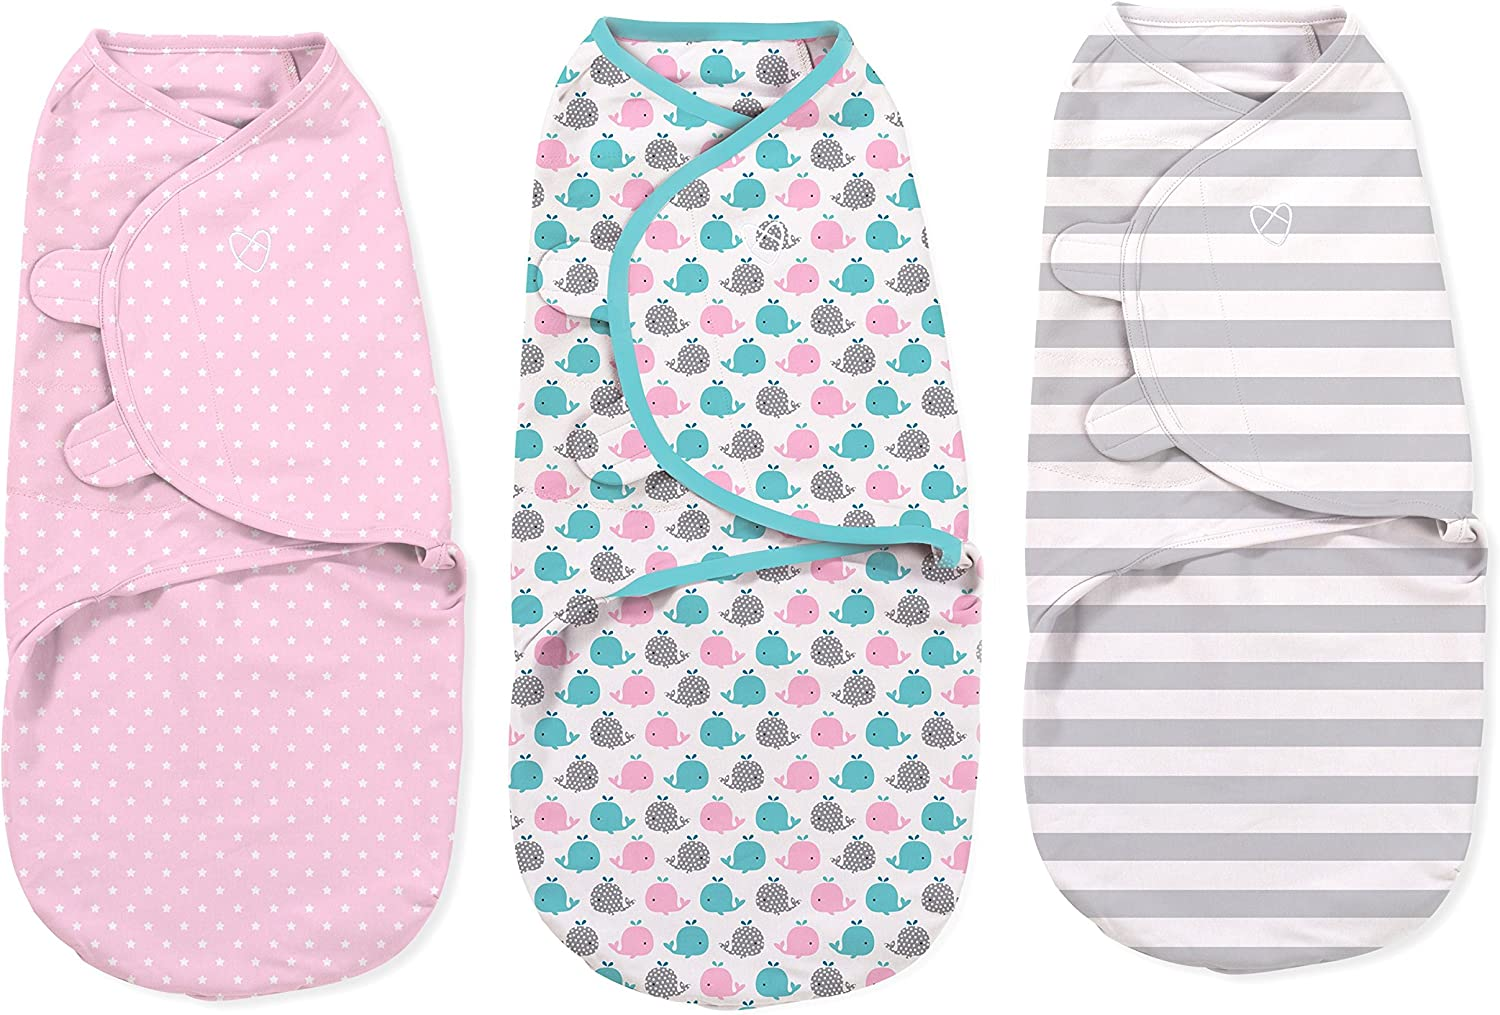 0-3 Months SwaddleMe Original Swaddle 3-PK Coral Days Small